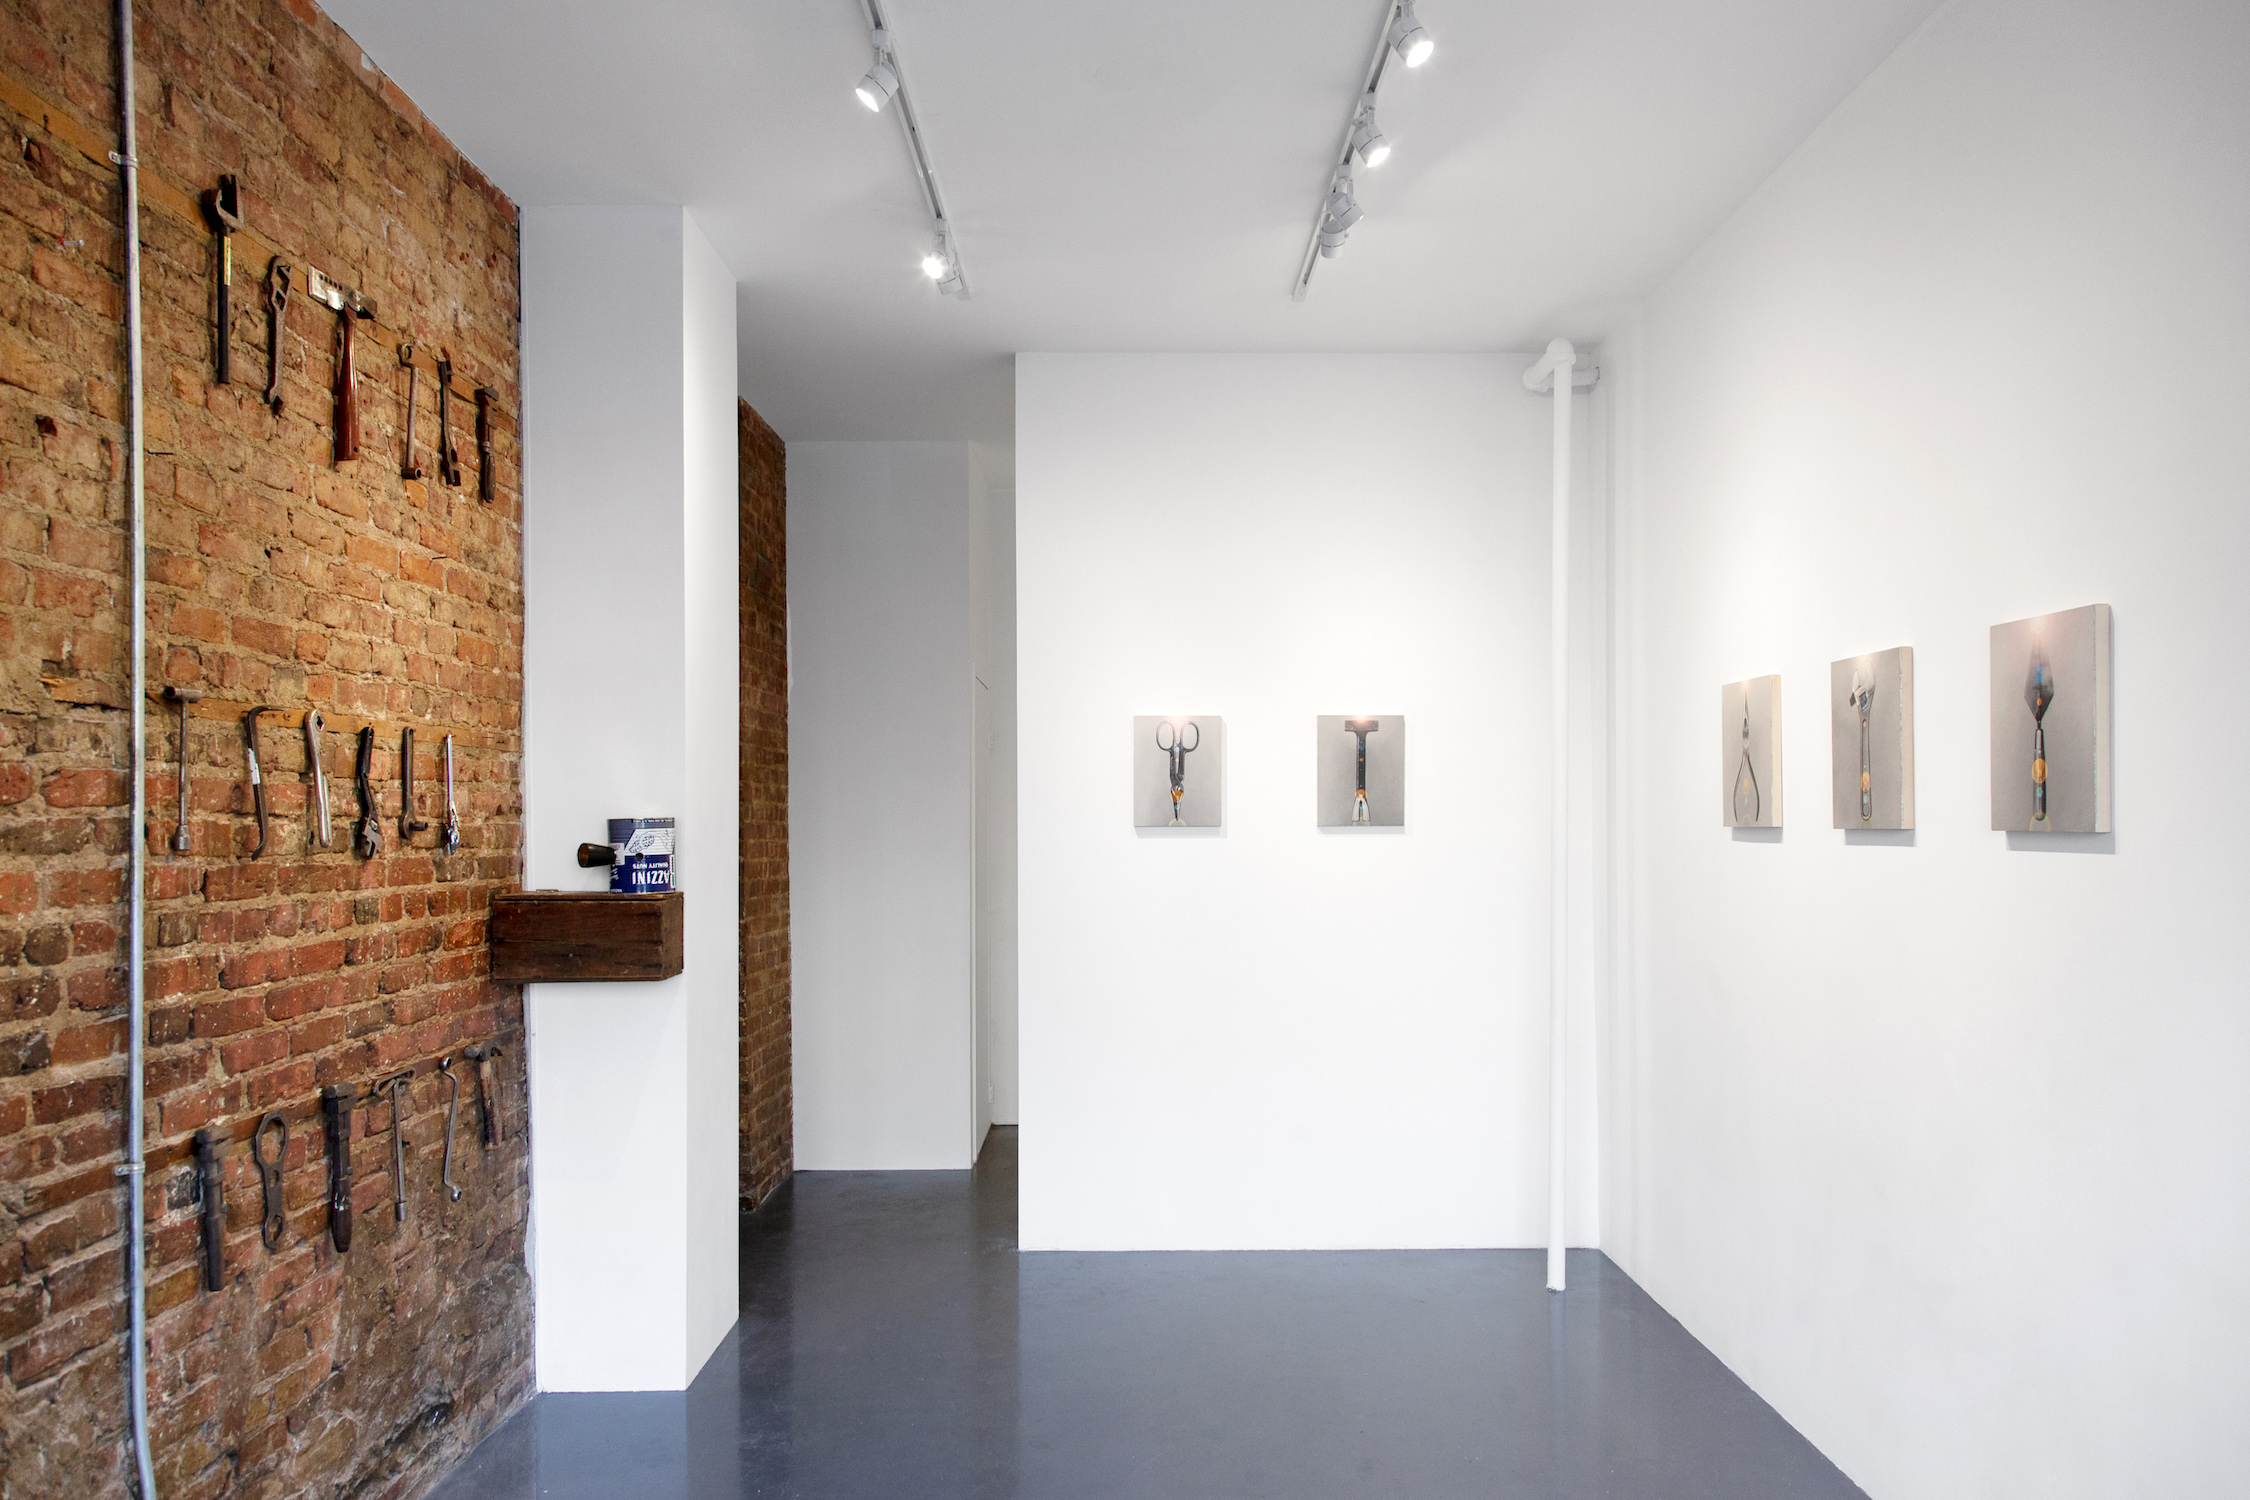 Installation View,  Material Ethereal , 2018